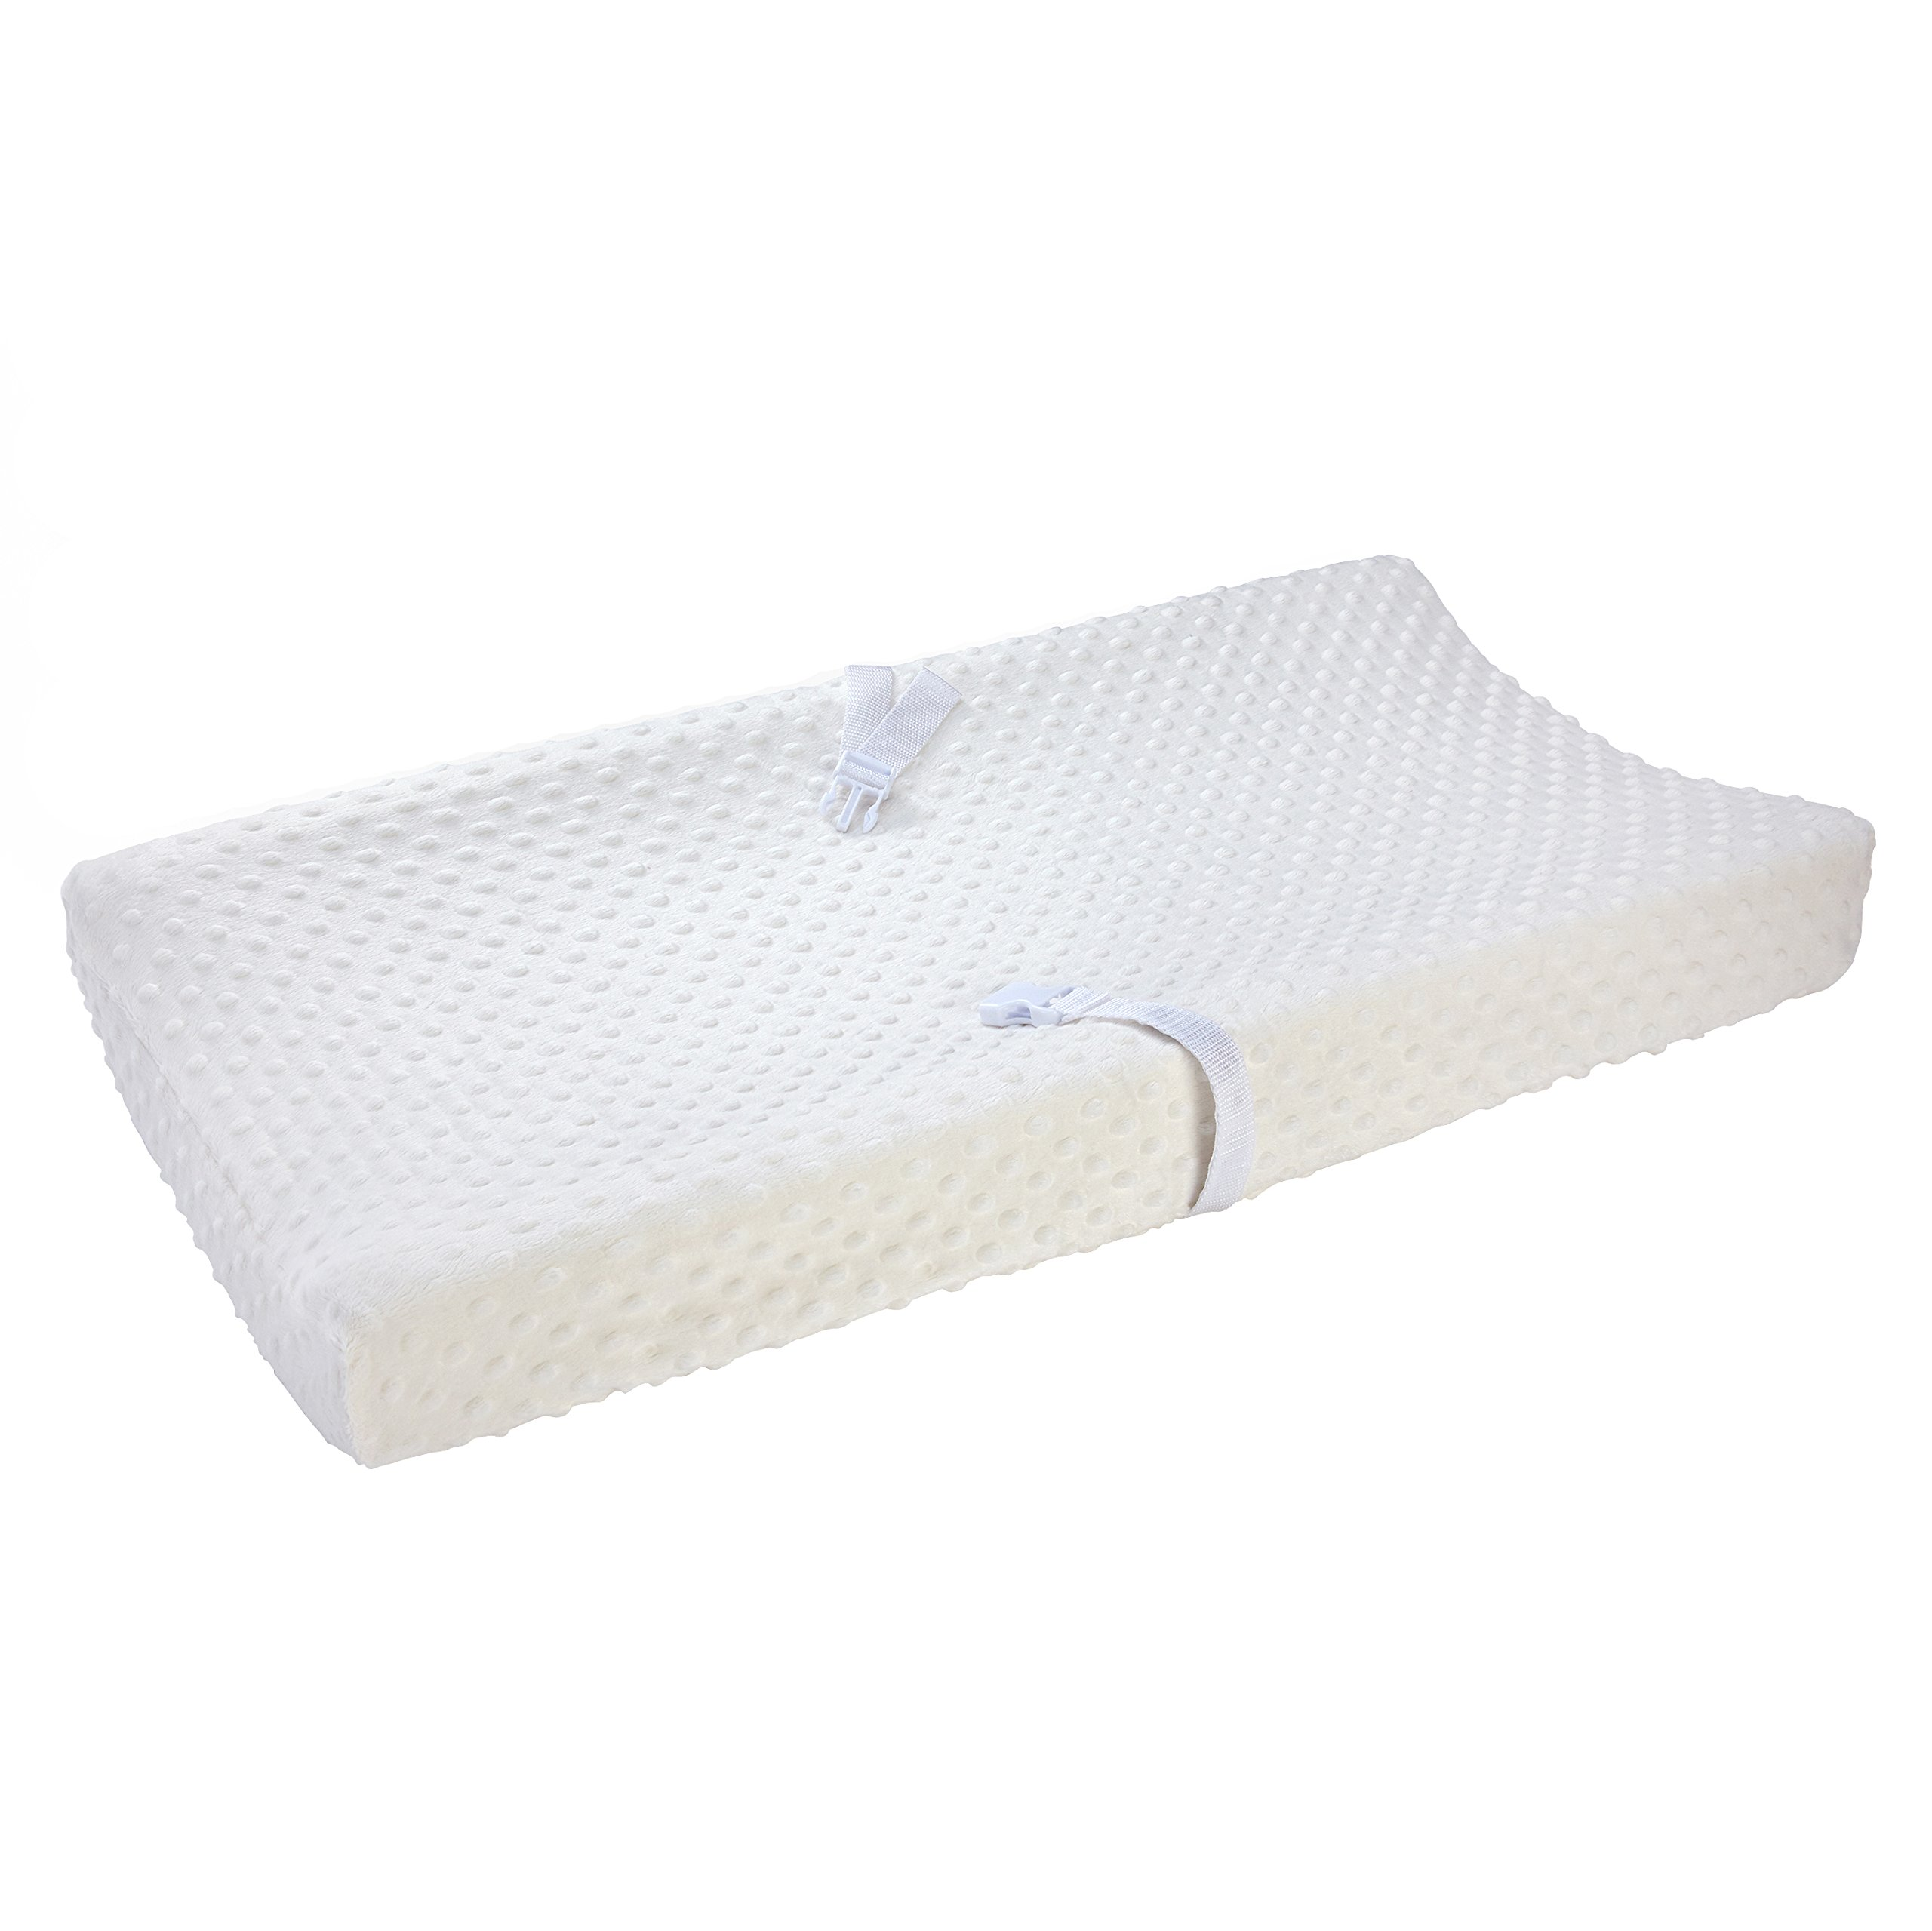 Carter's Changing Pad Cover, Solid Ecru, One Size by Carter's